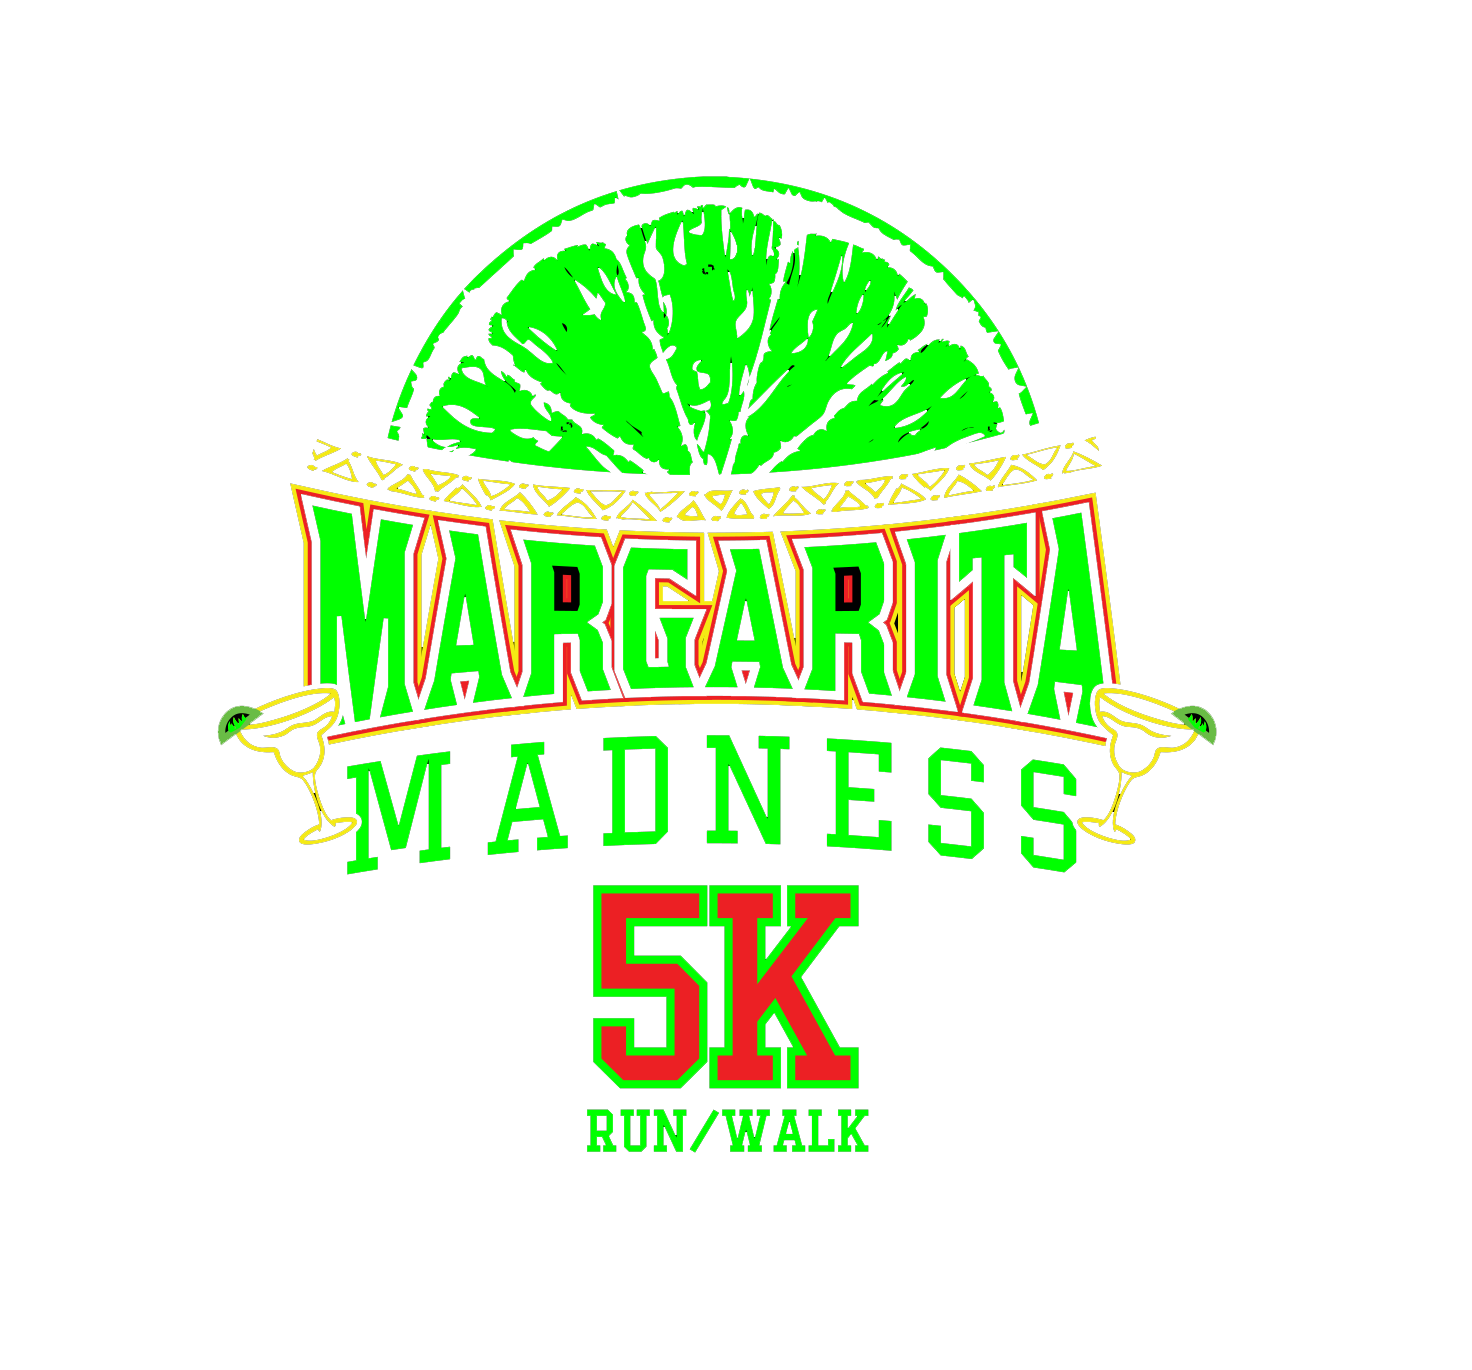 Margarita Madness 5K \u002D Washington - cover image